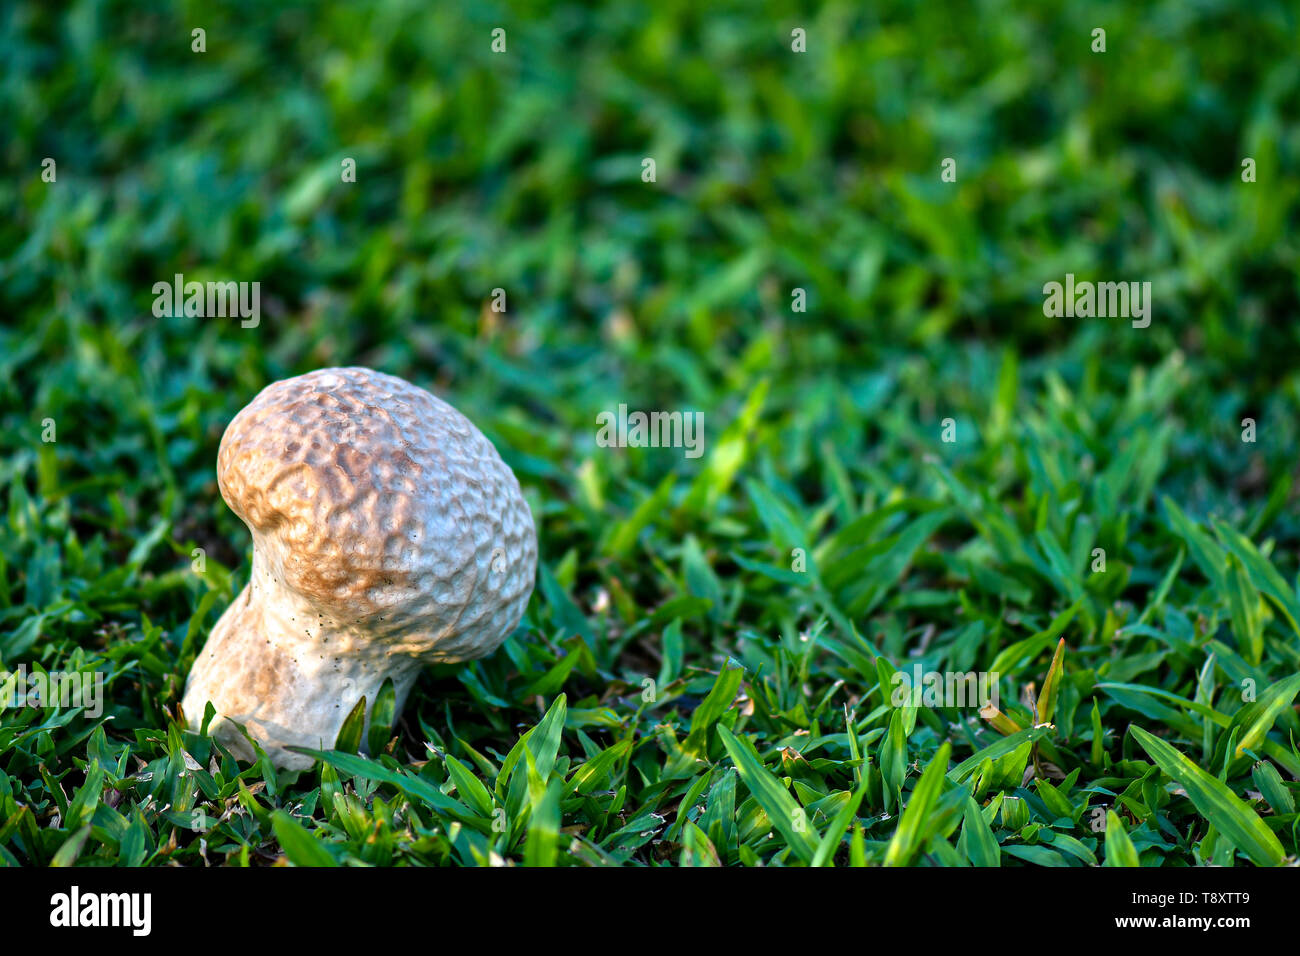 Skull puffball is a species of giant white mushroom. Stock Photo